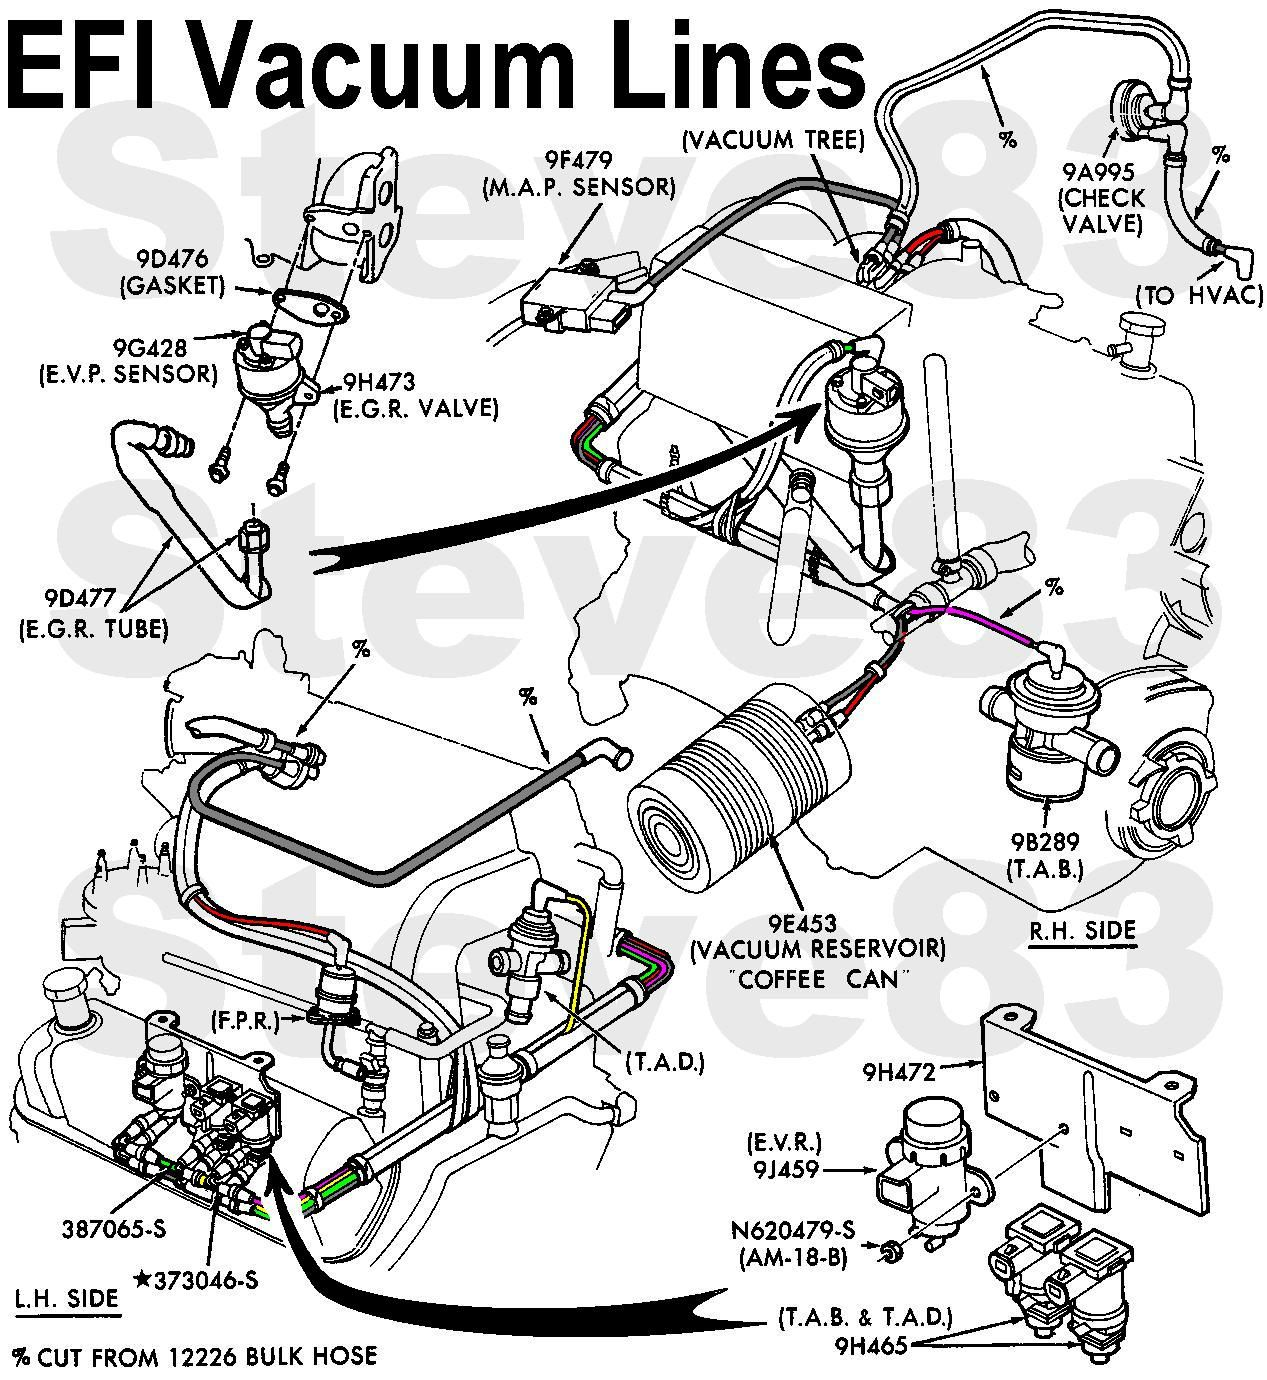 1989 F250 Engine Diagram Trusted Wiring Diagrams Chevy 350 Ford F150 04 Lariat 4x2 Stock 98 Nascar Rh Pinterest Com 60 Diesel Part